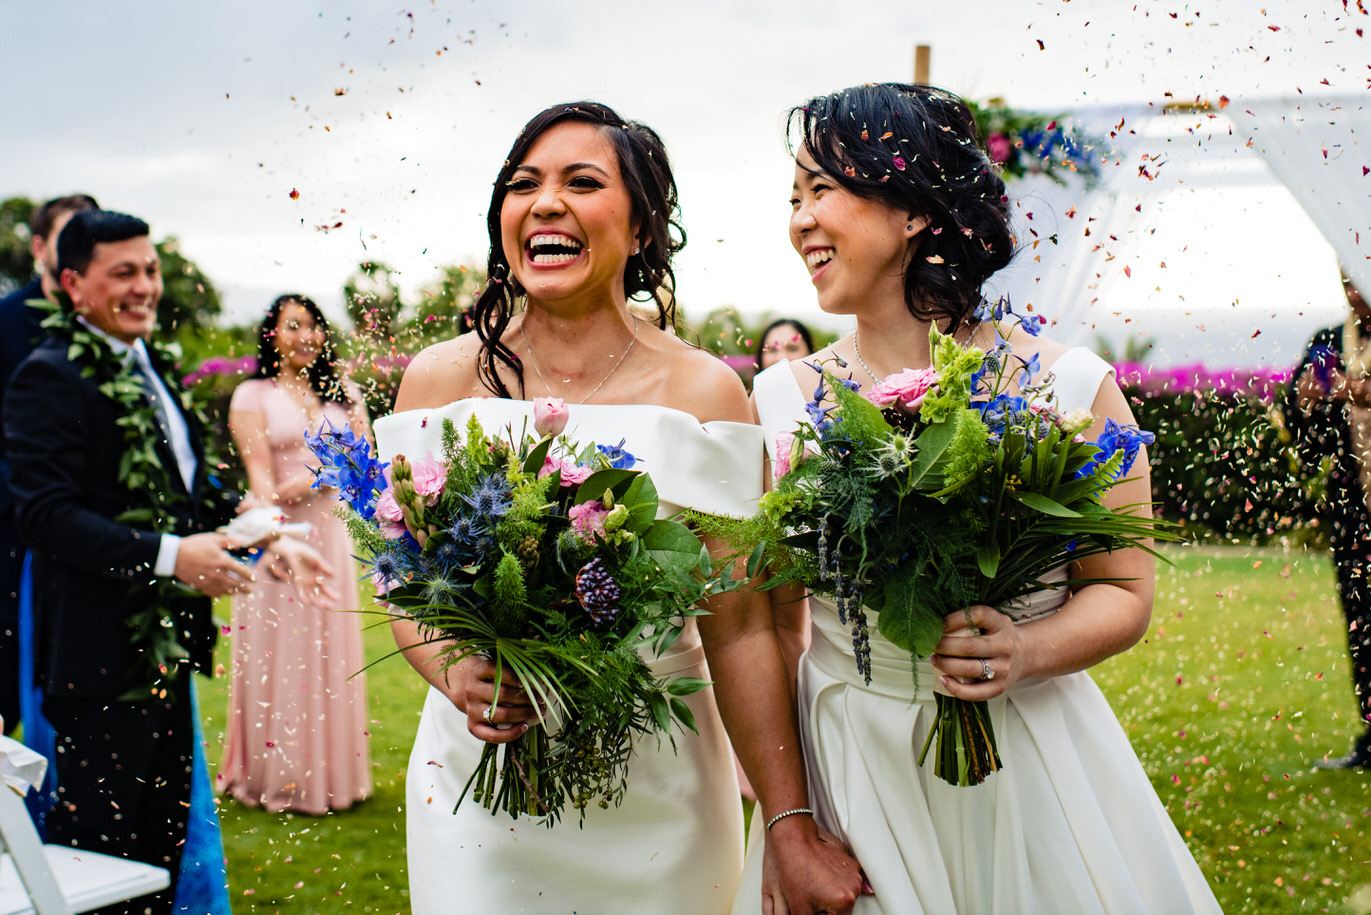 Two brides in confetti - photo by Angela Nelson Photography